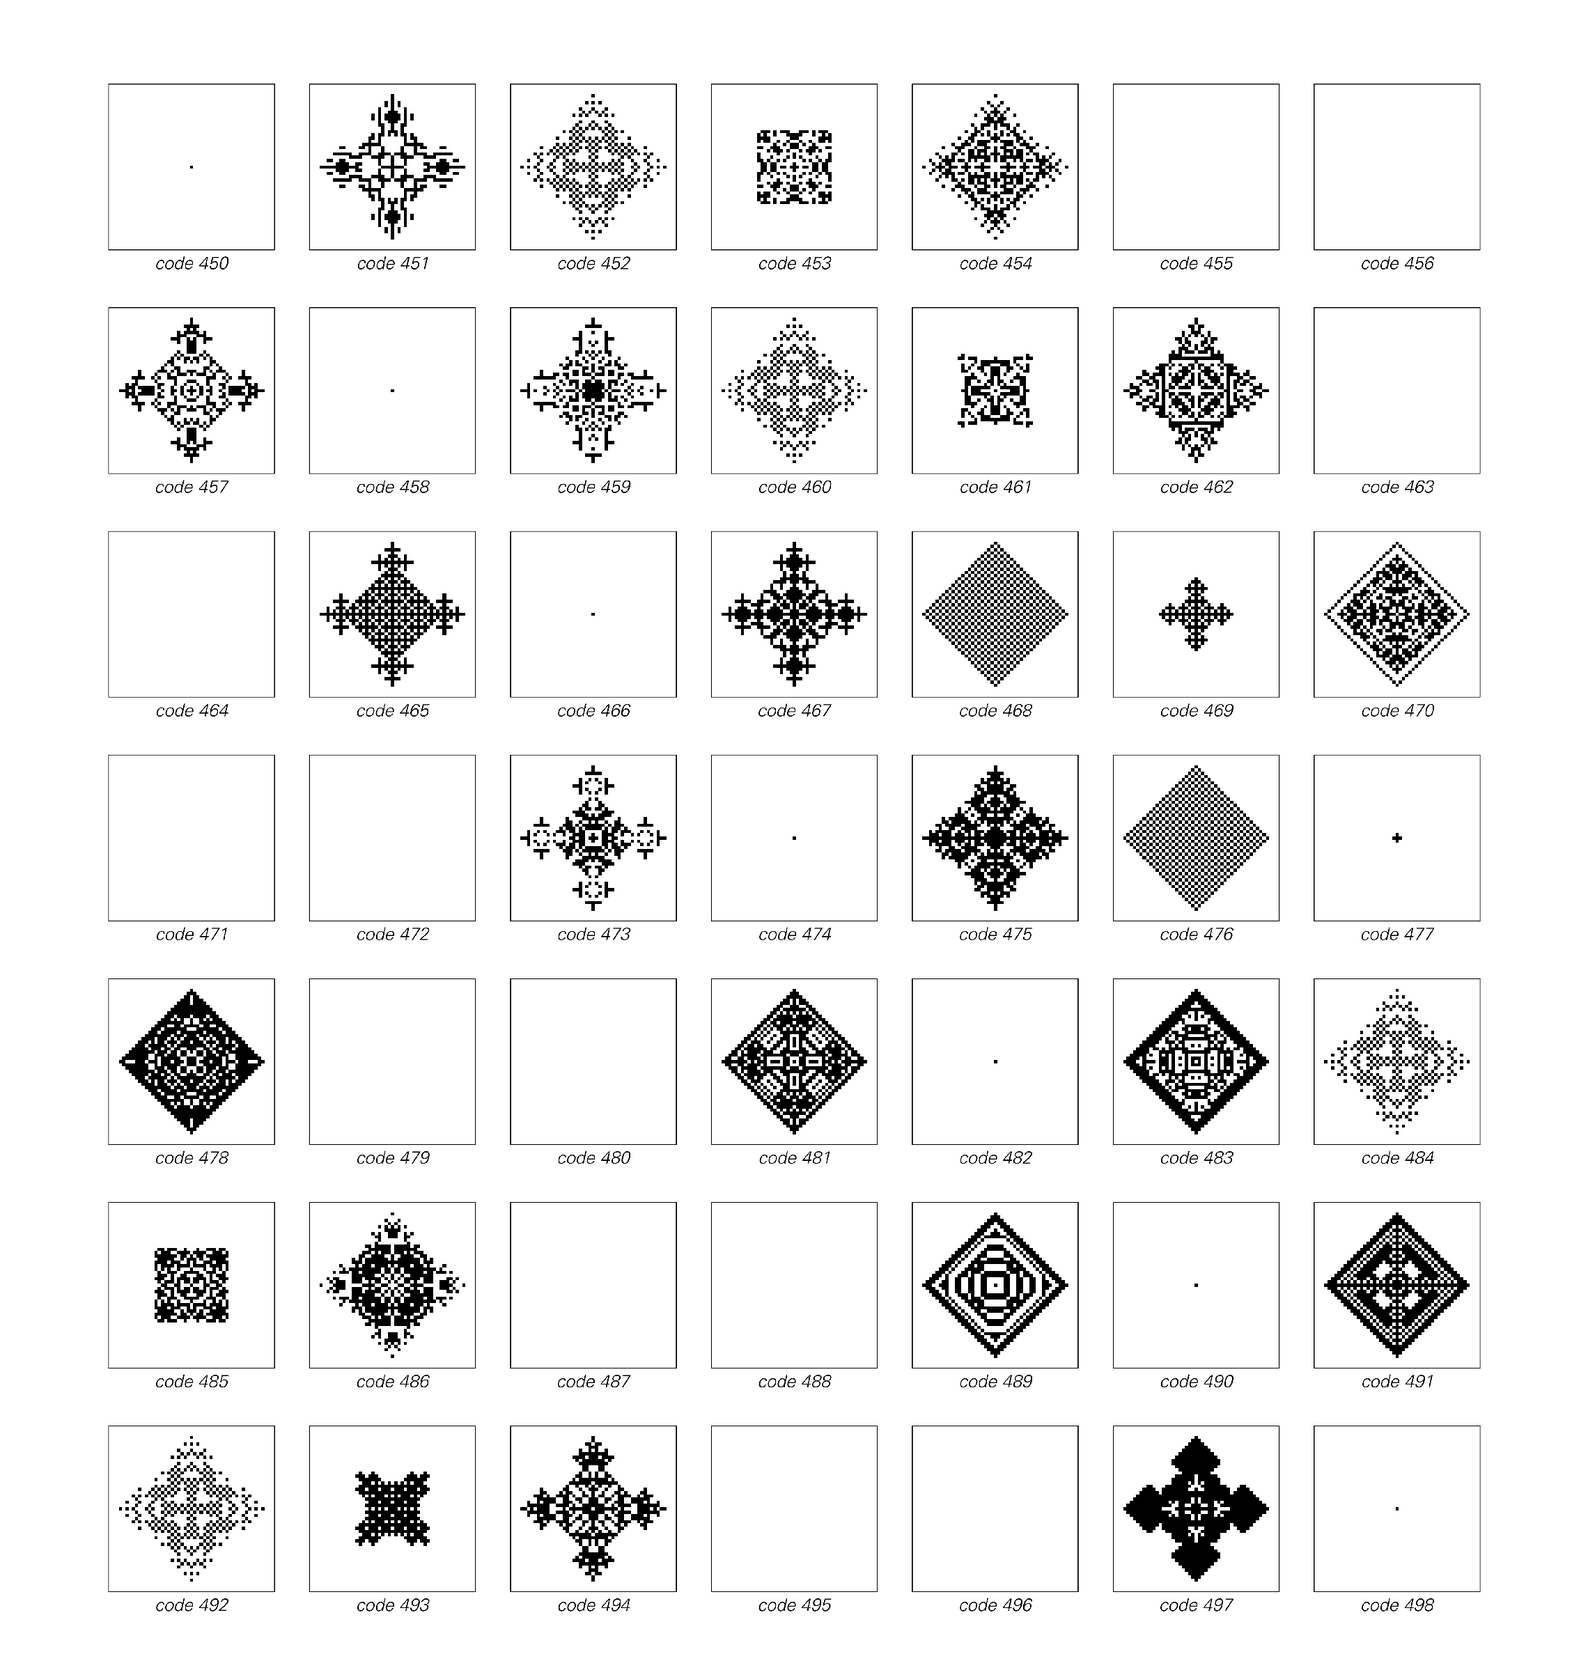 Patterns generated by a sequence of two-dimensional cellular automaton rules. The patterns are produced by starting from a single black square and then running for 22 steps. In each case the base 2 digit sequence for the code number specifies the rule as follows. The last digit specifies what color the center cell should be if all its neighbors were white on the previous step, and it too was white. The second-to-last digit specifies what happens if all the neighbors are white, but the center cell itself is black. And each earlier digit then specifies what should happen if progressively more neighbors are black. (Compare page60.)